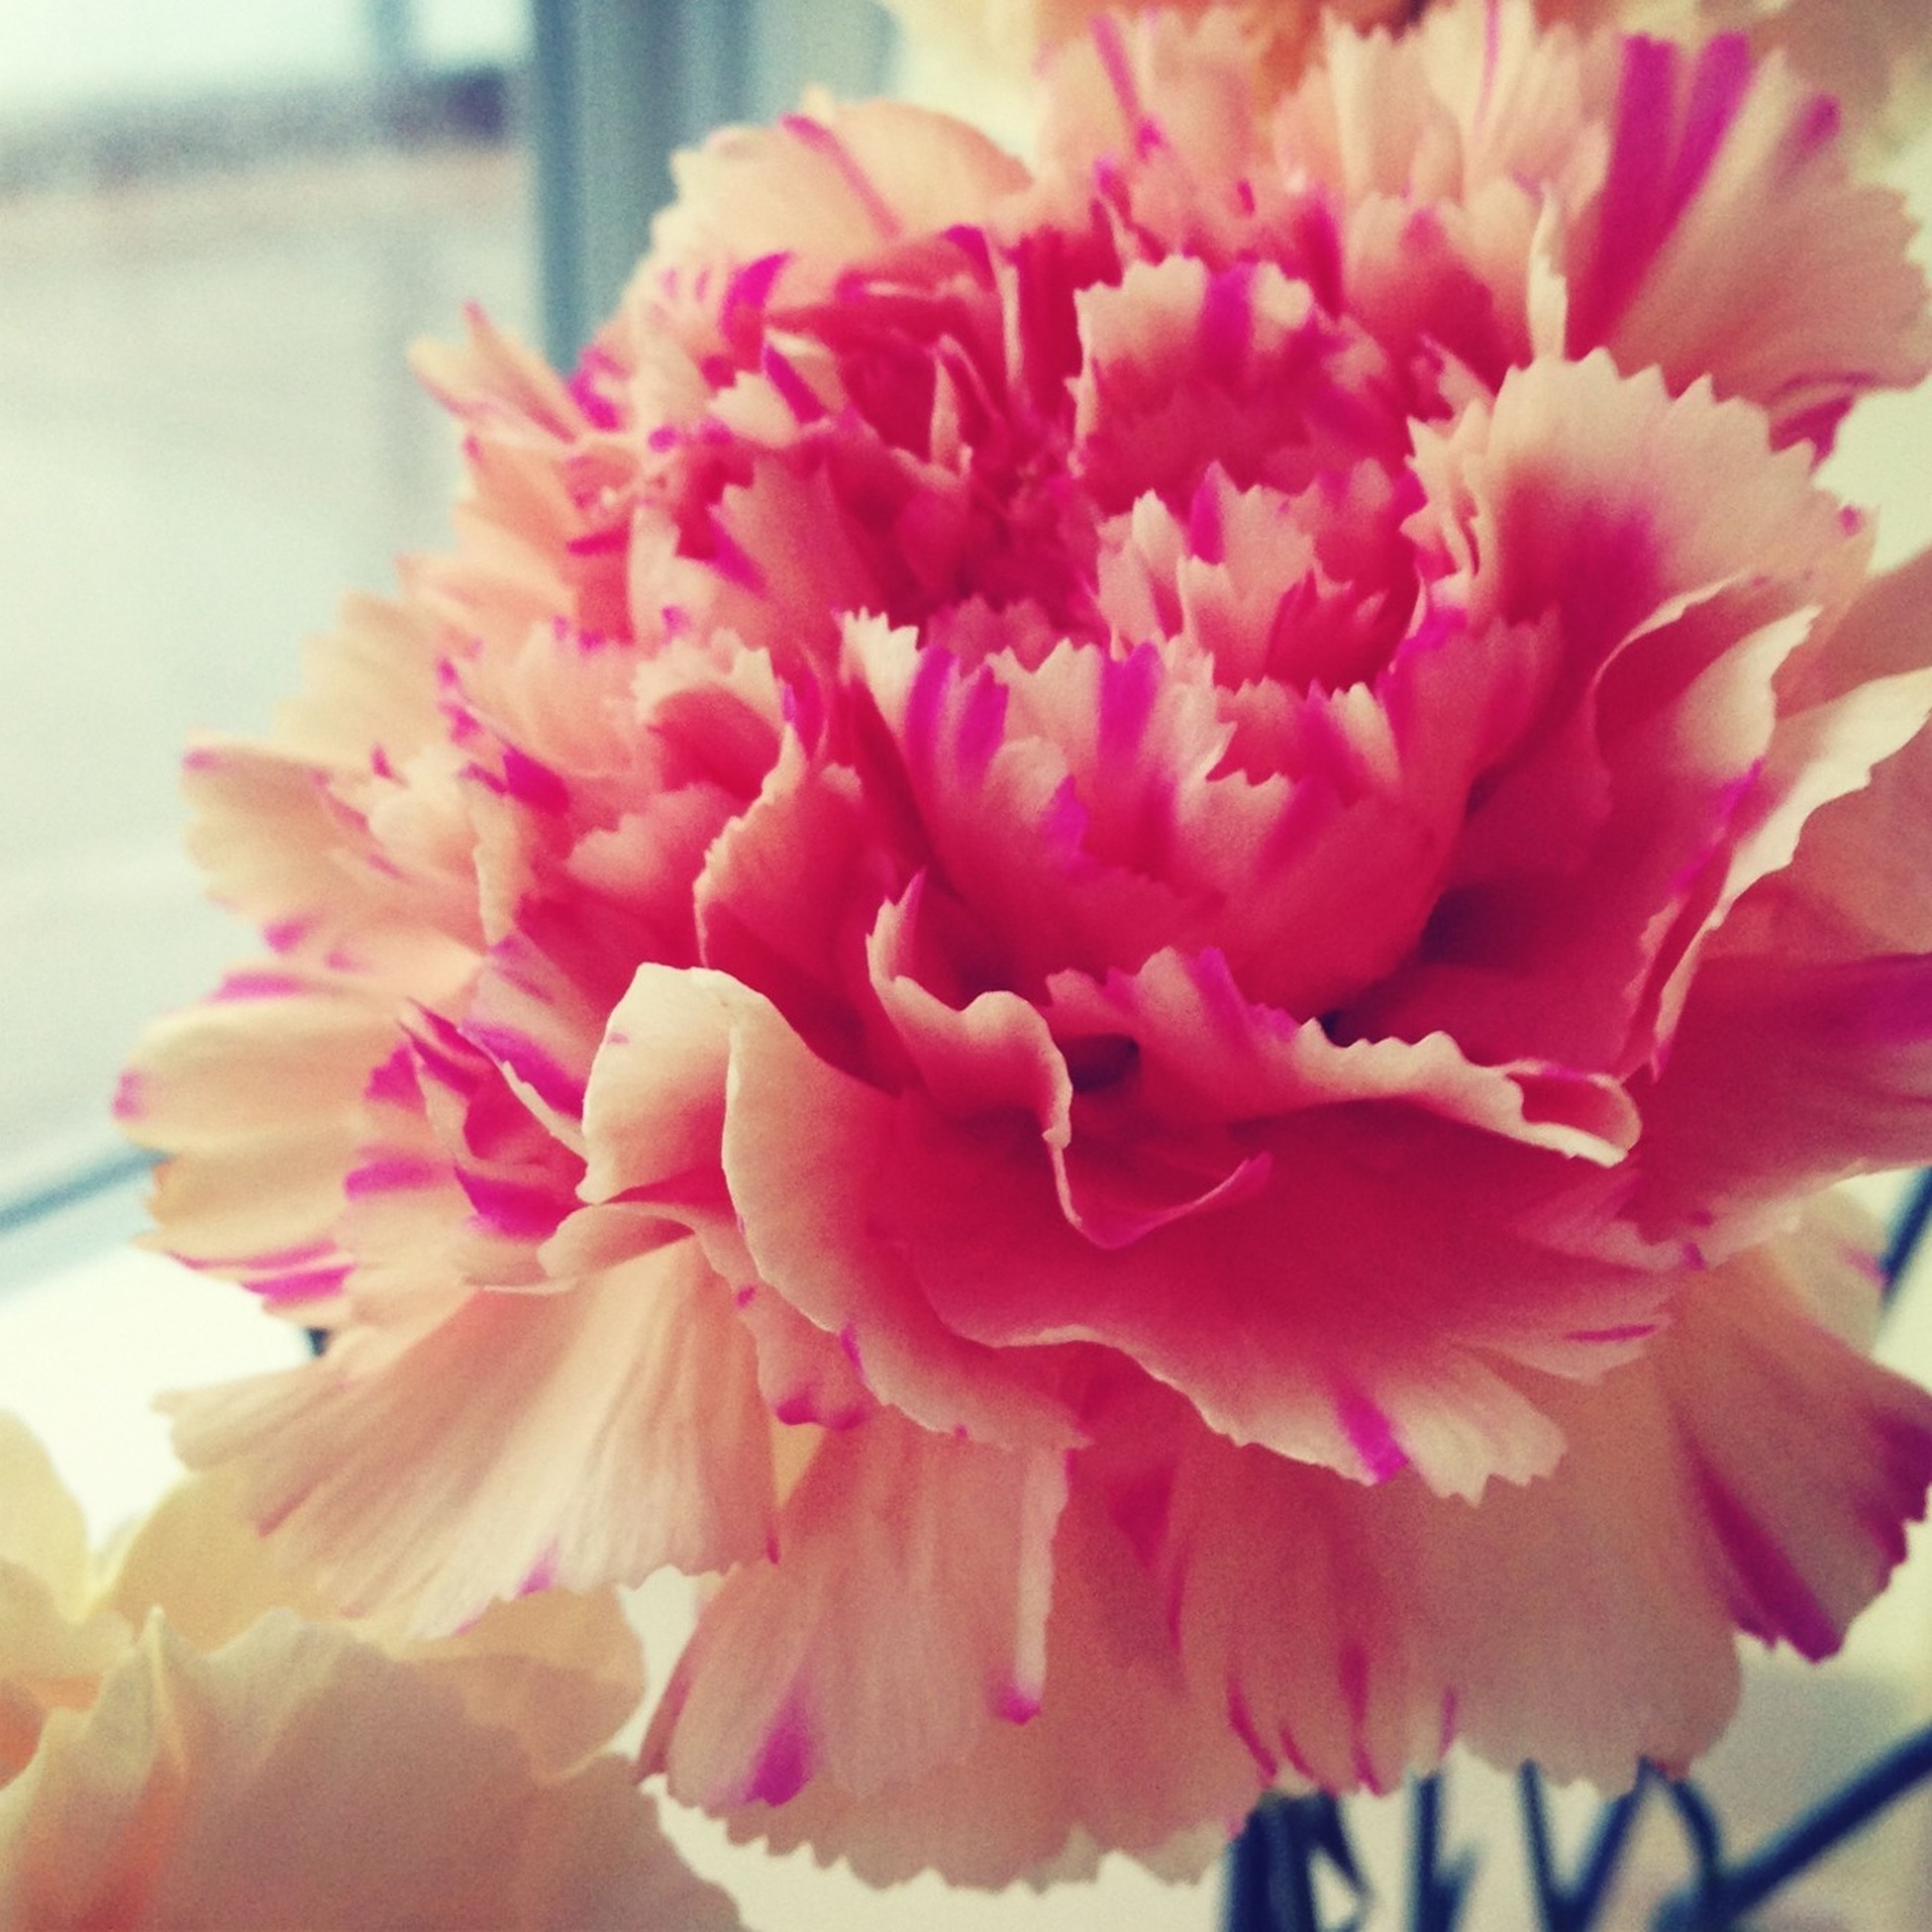 flower, petal, freshness, flower head, fragility, close-up, beauty in nature, pink color, growth, focus on foreground, nature, blooming, indoors, single flower, pink, plant, in bloom, blossom, rose - flower, no people